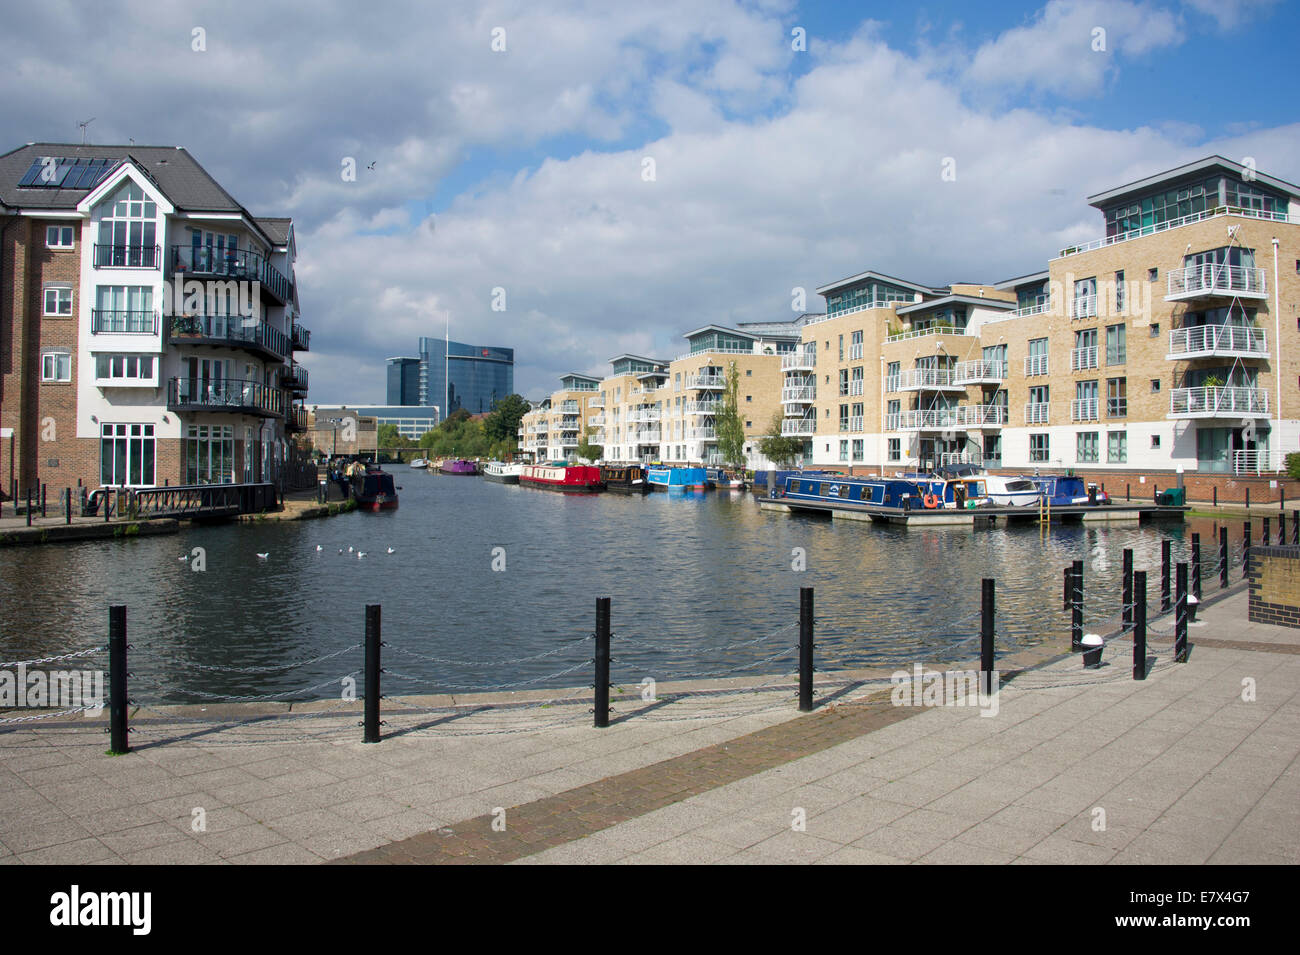 the Grand Union Canal Brentford Lock, West London - Stock Image